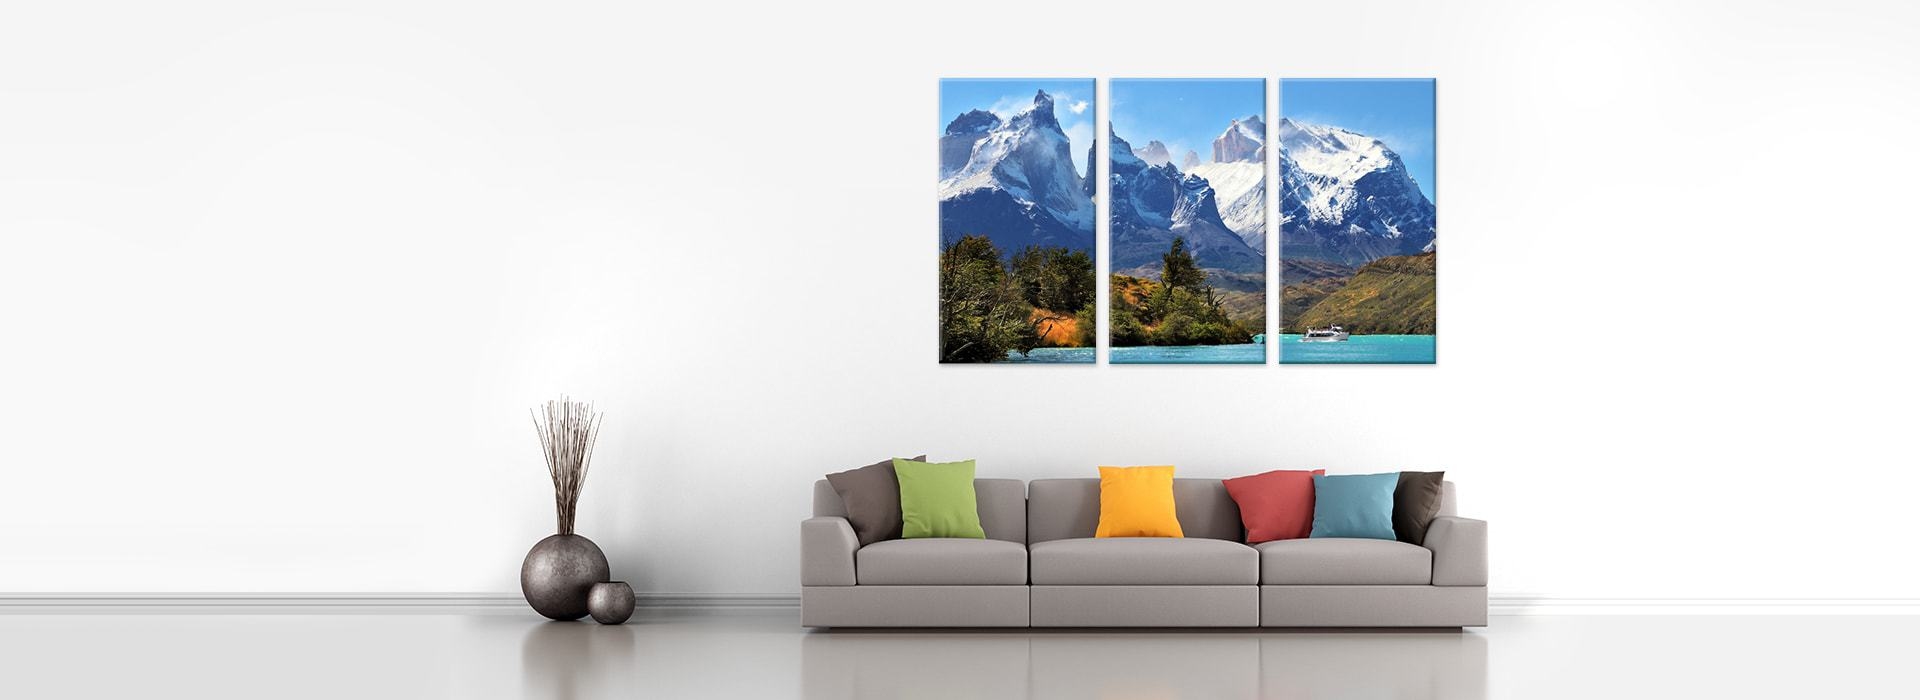 Custom Canvas Prints Online